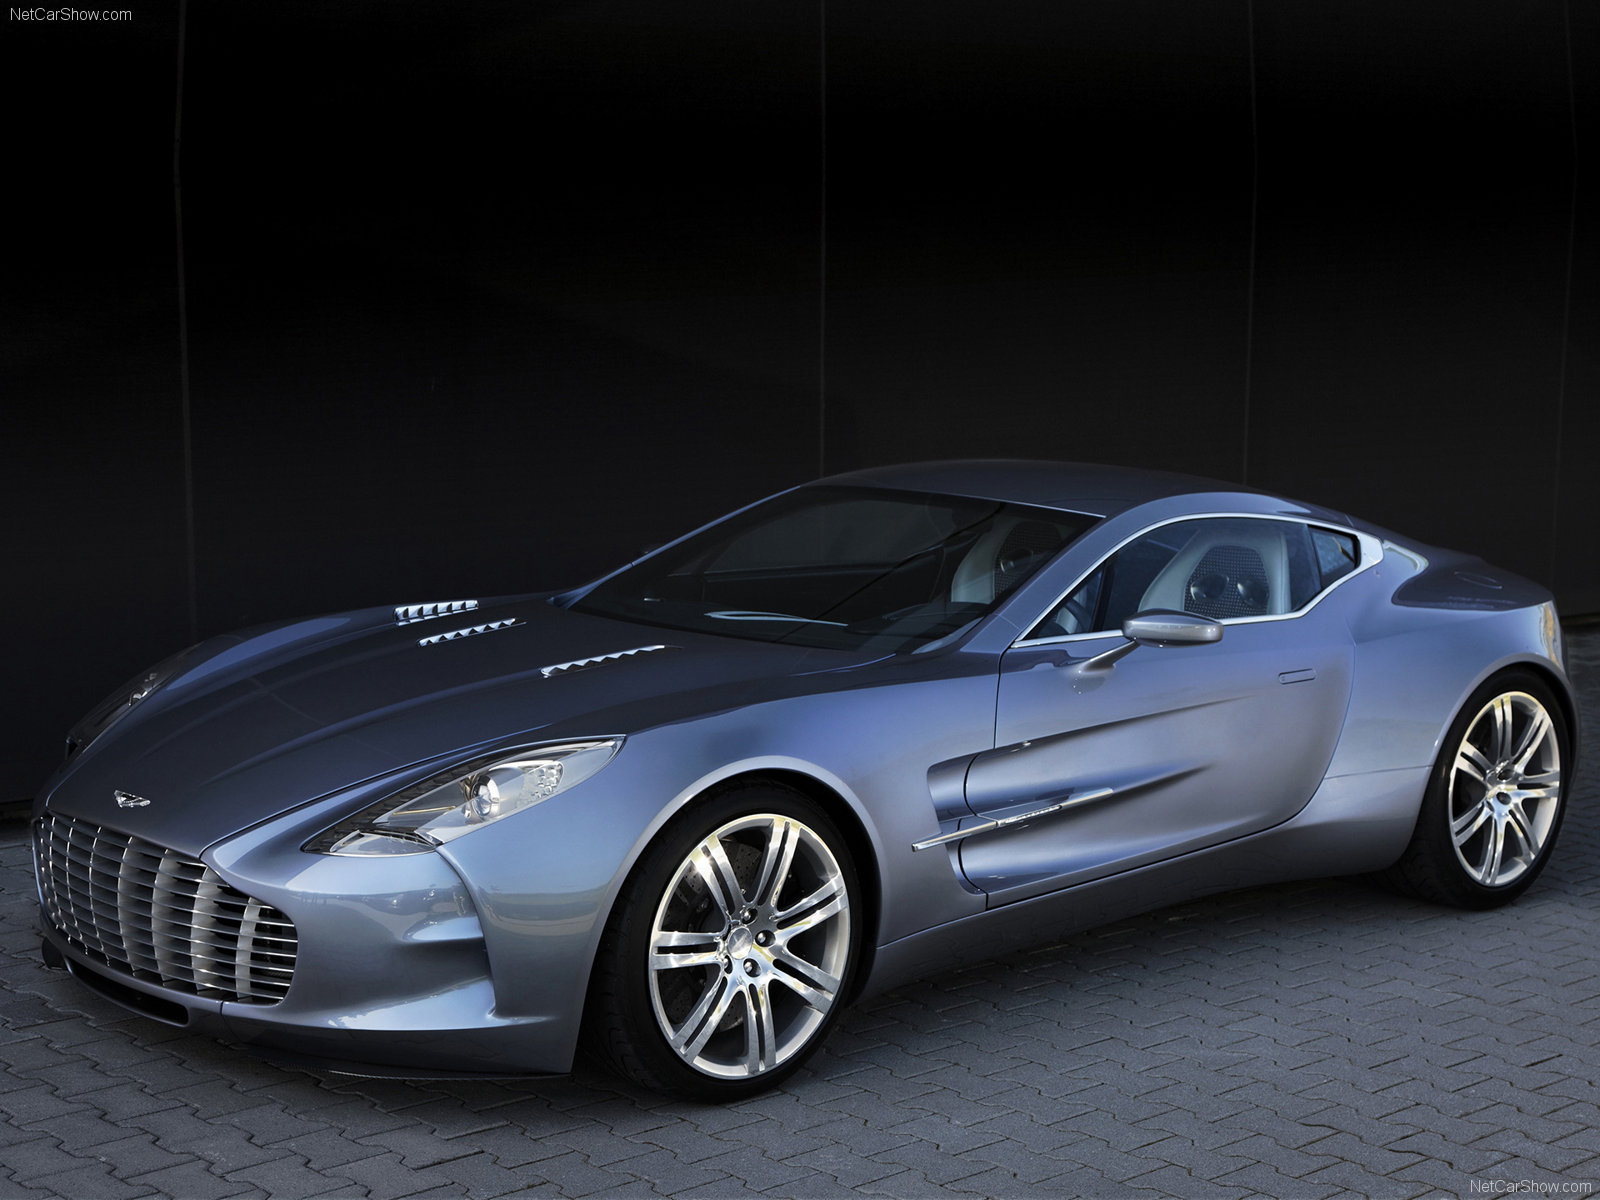 aston martin wallpaper: